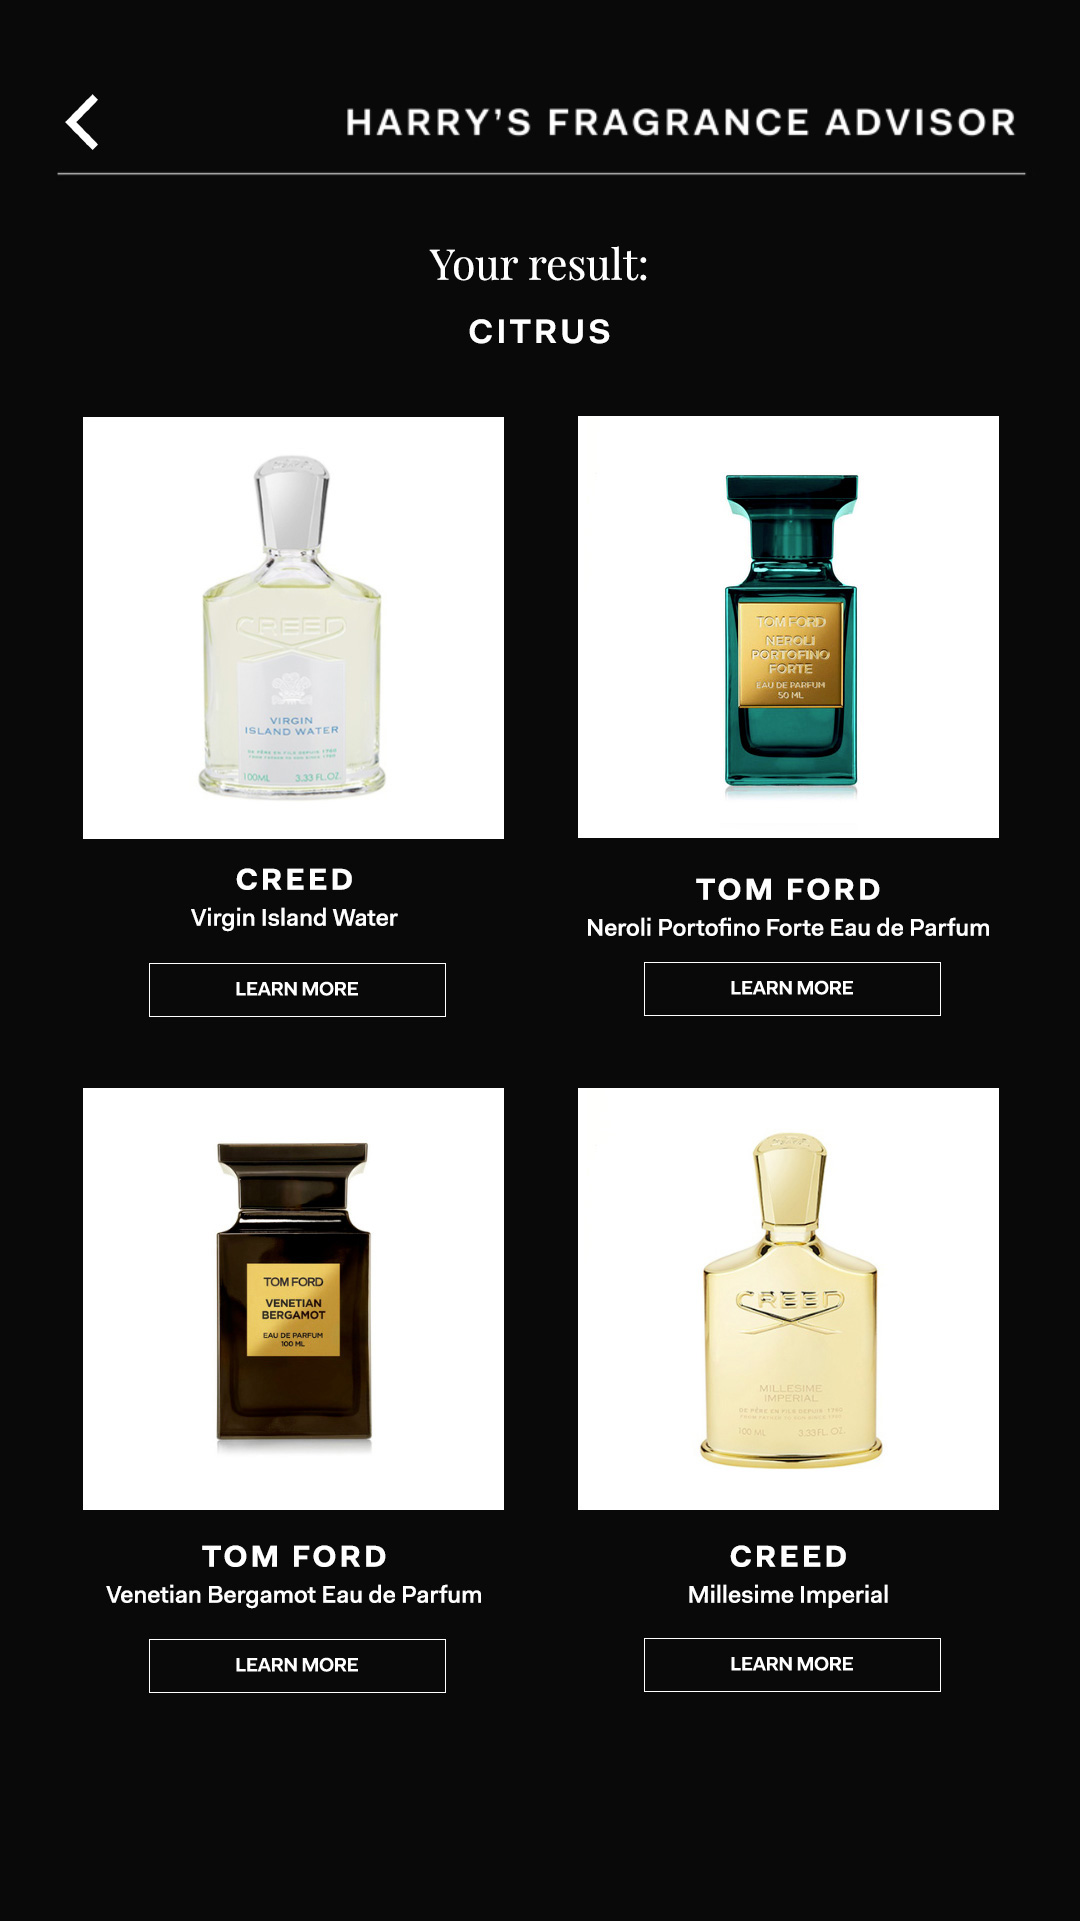 harrys-fragrance-advisor-citrus